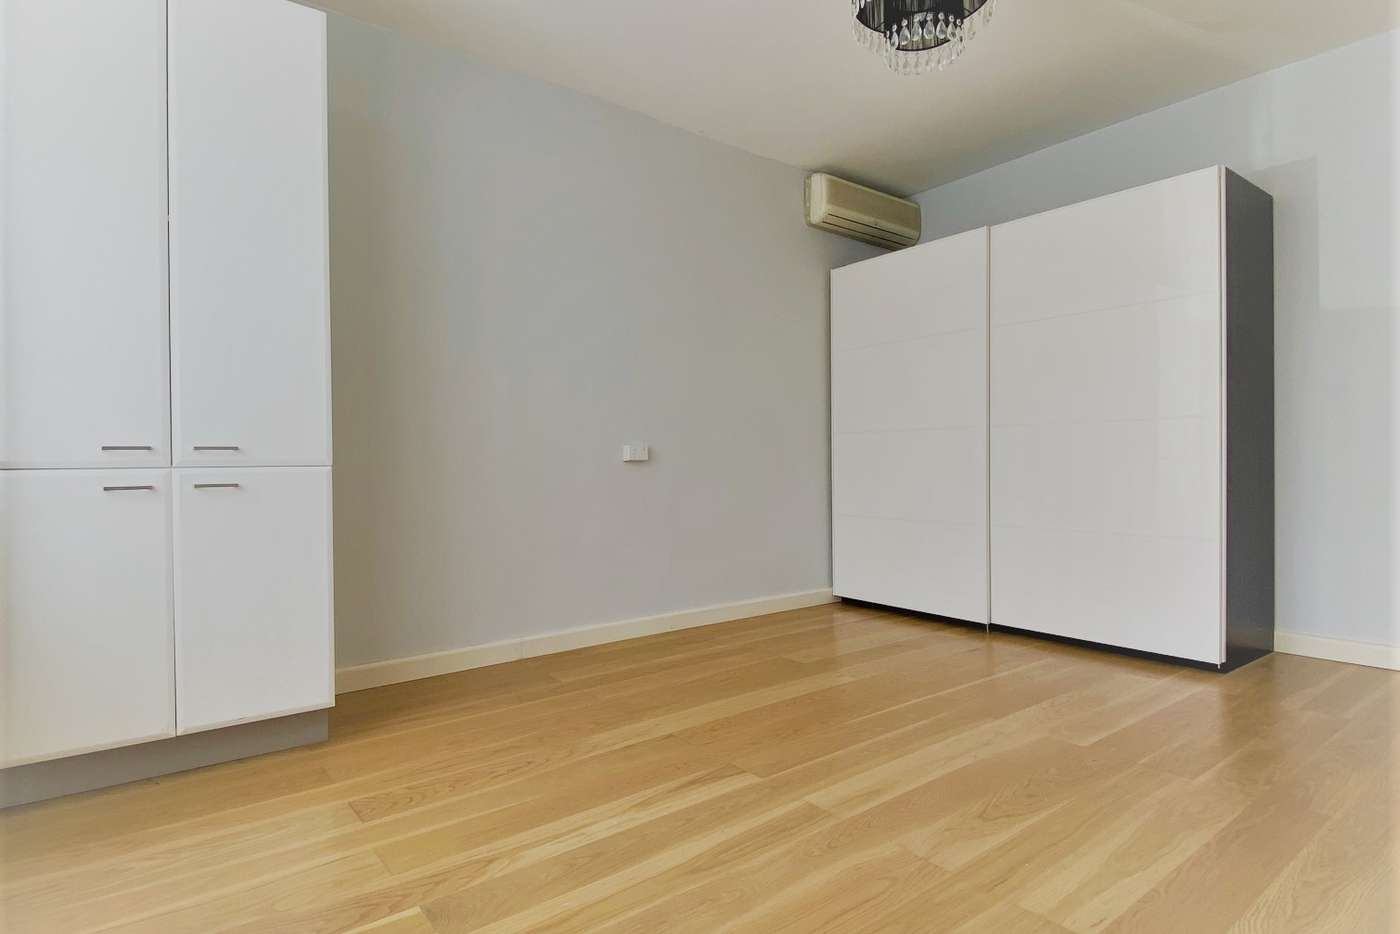 Seventh view of Homely apartment listing, 7/569 Orrong Road, Armadale VIC 3143